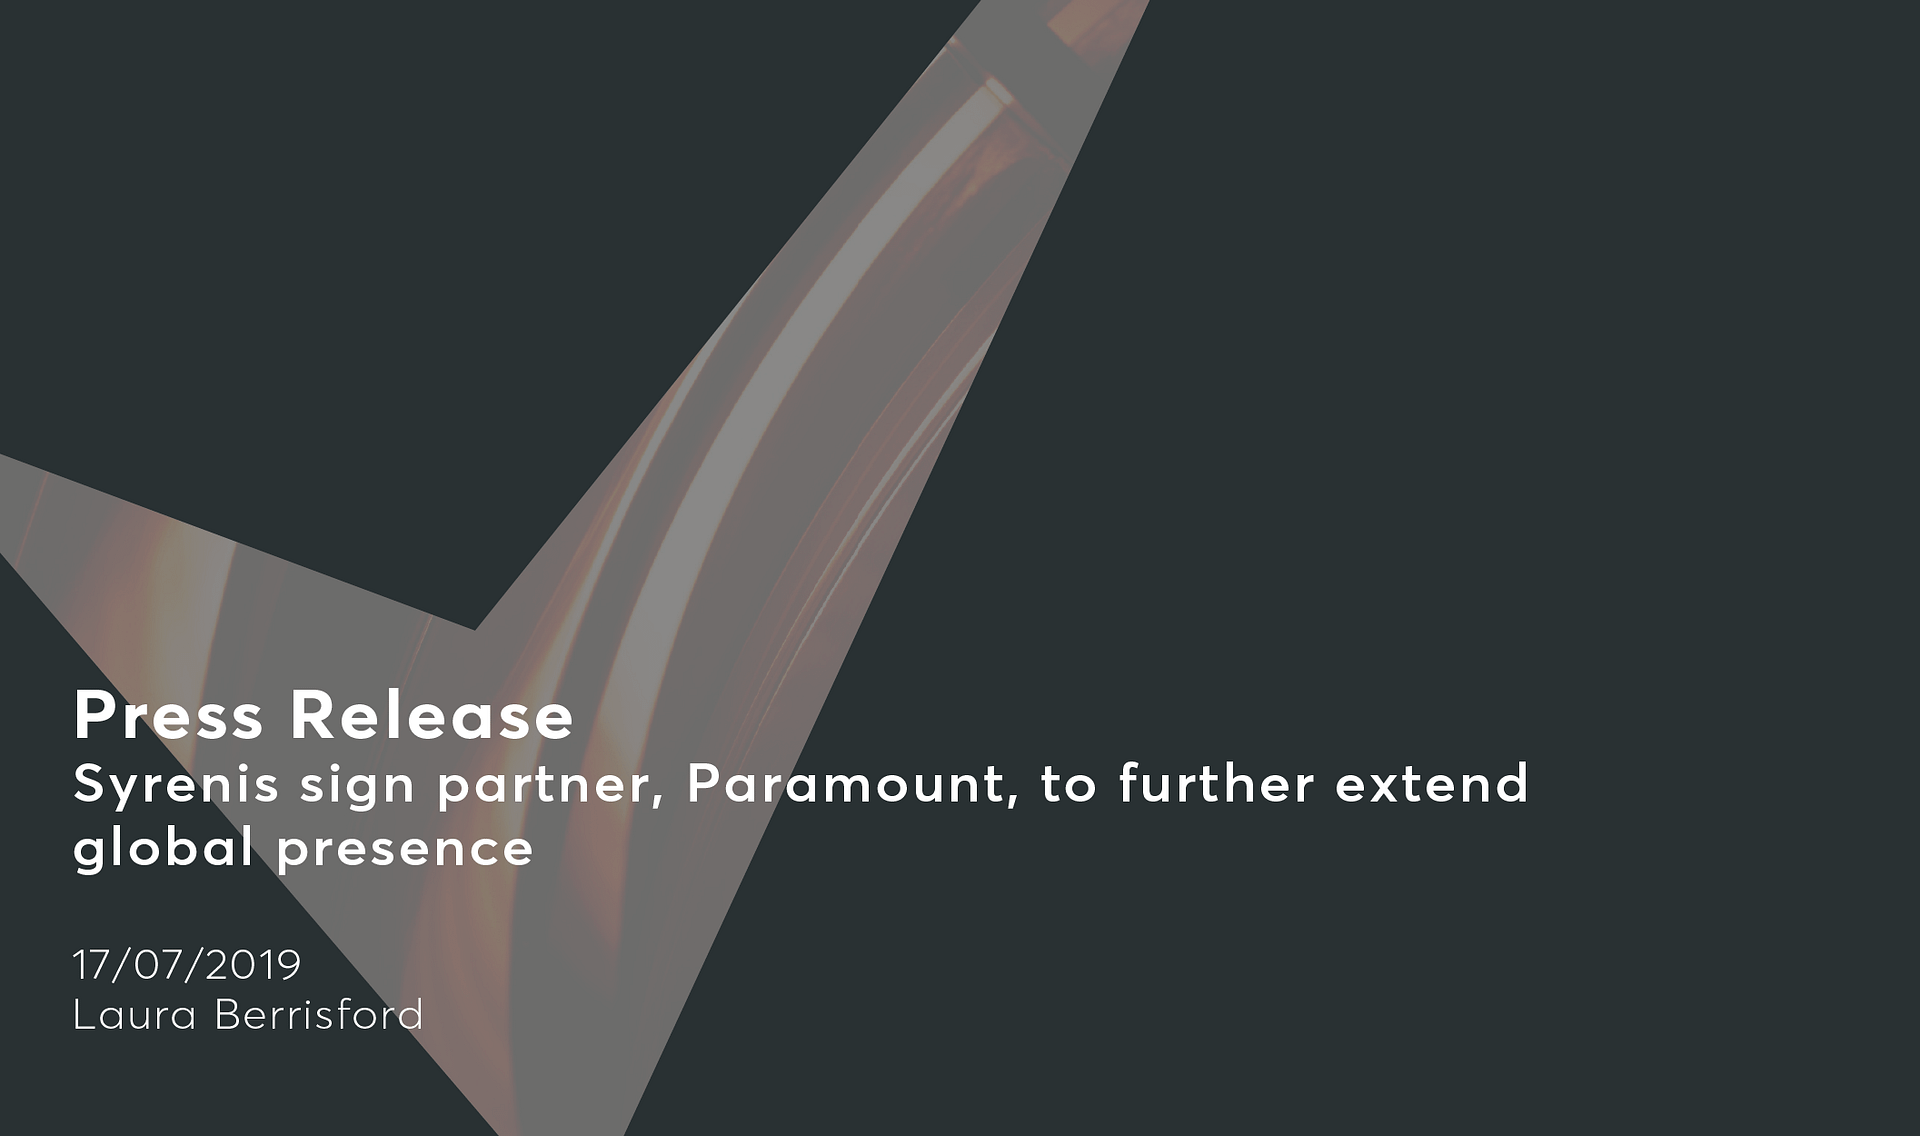 Syrenis sign partner, Paramount, to further extend global presence Cassie personal information & consent management